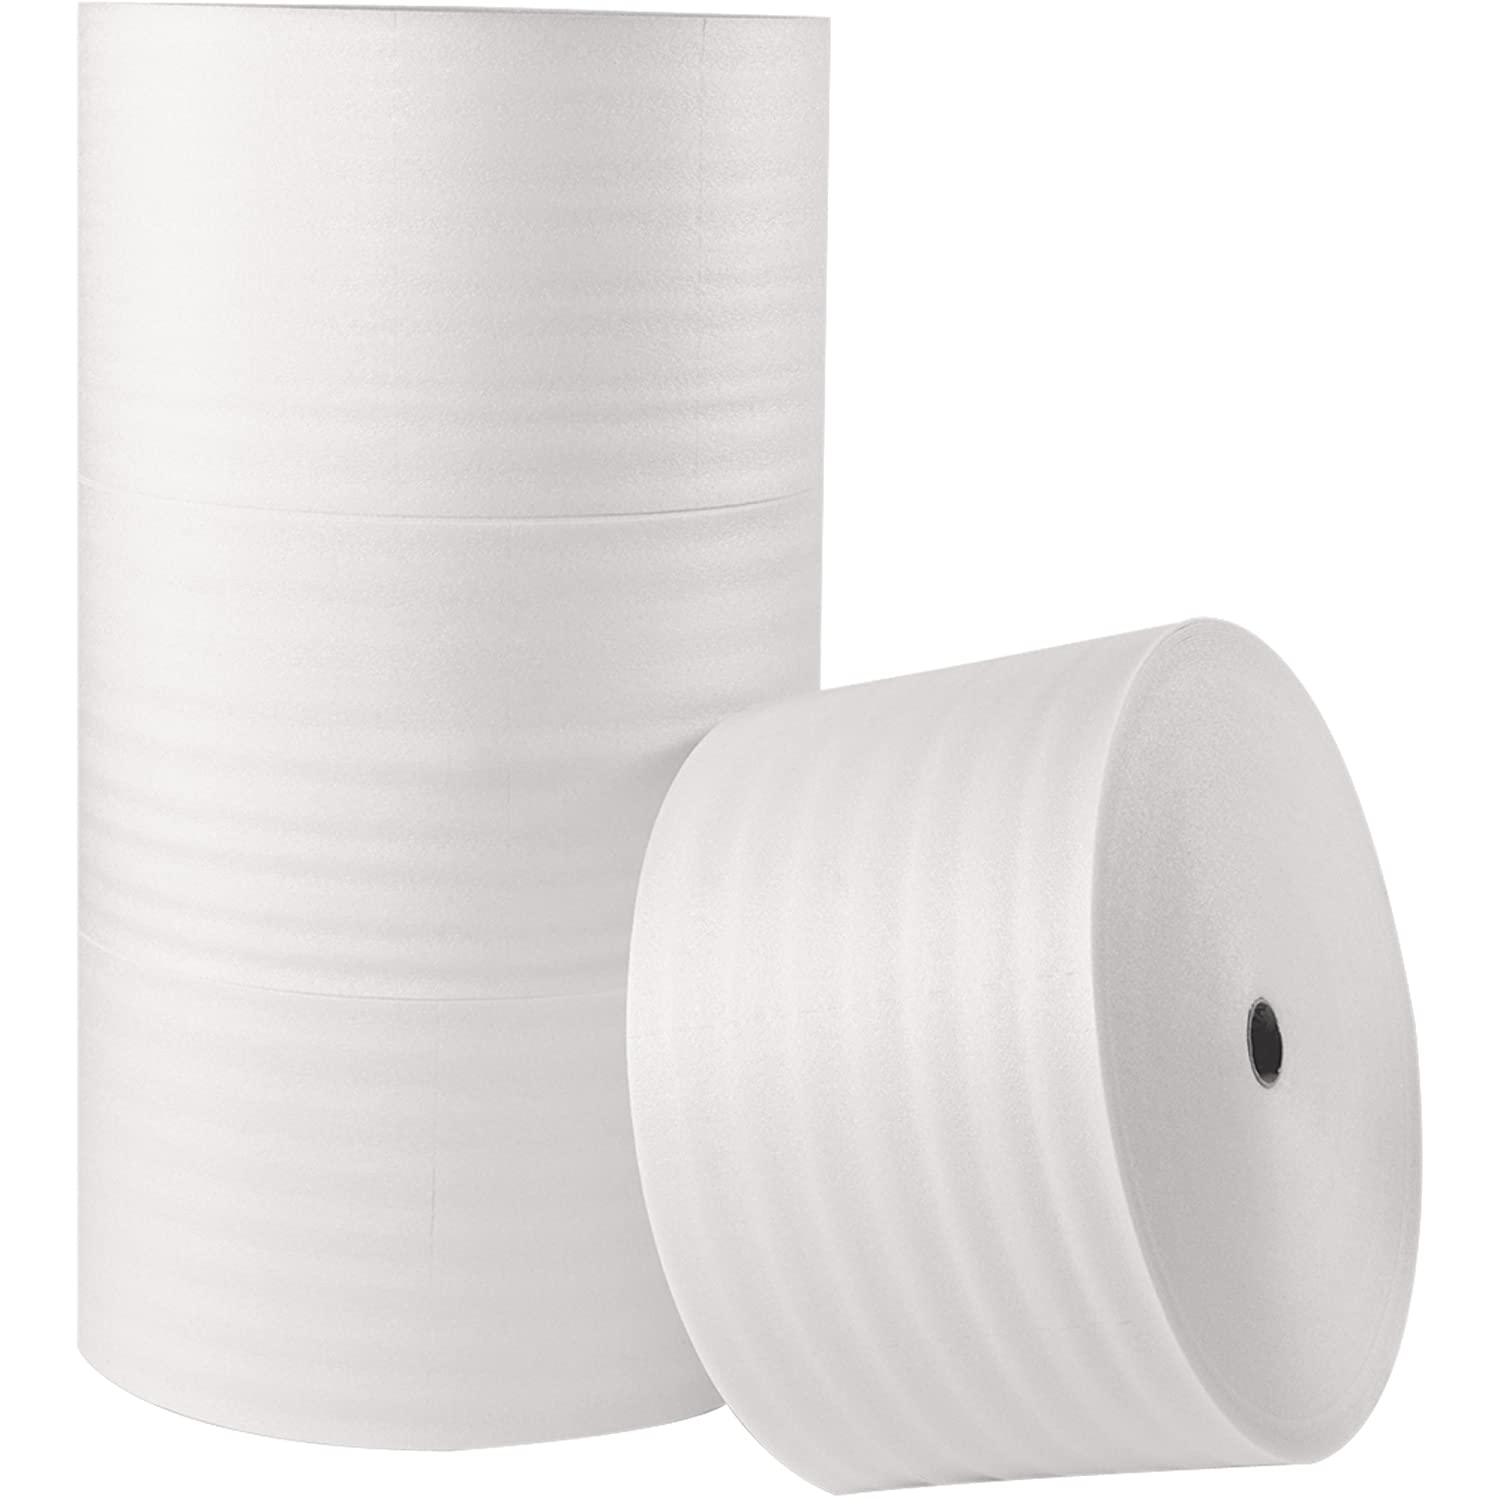 Cash special price UPSable Air Selling Foam Rolls 1 16